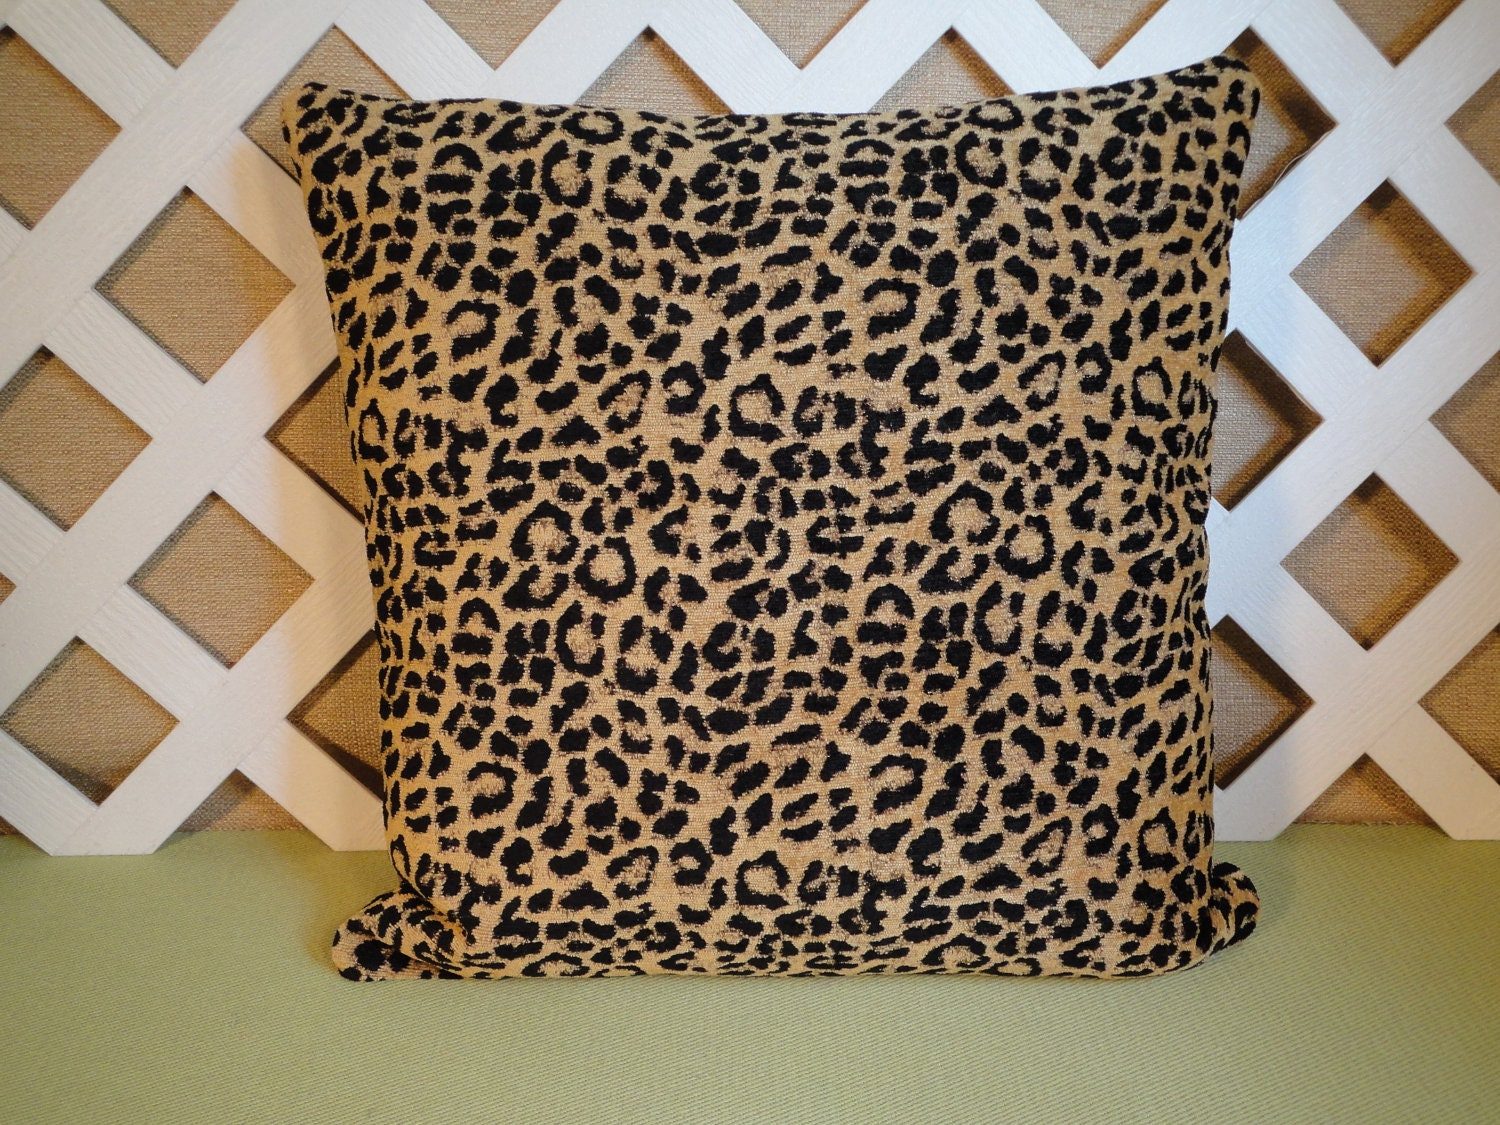 Animal Print Pillow Covers : Leopard Print Pillow Cover/ Leopard Pillow/ Black and Tan